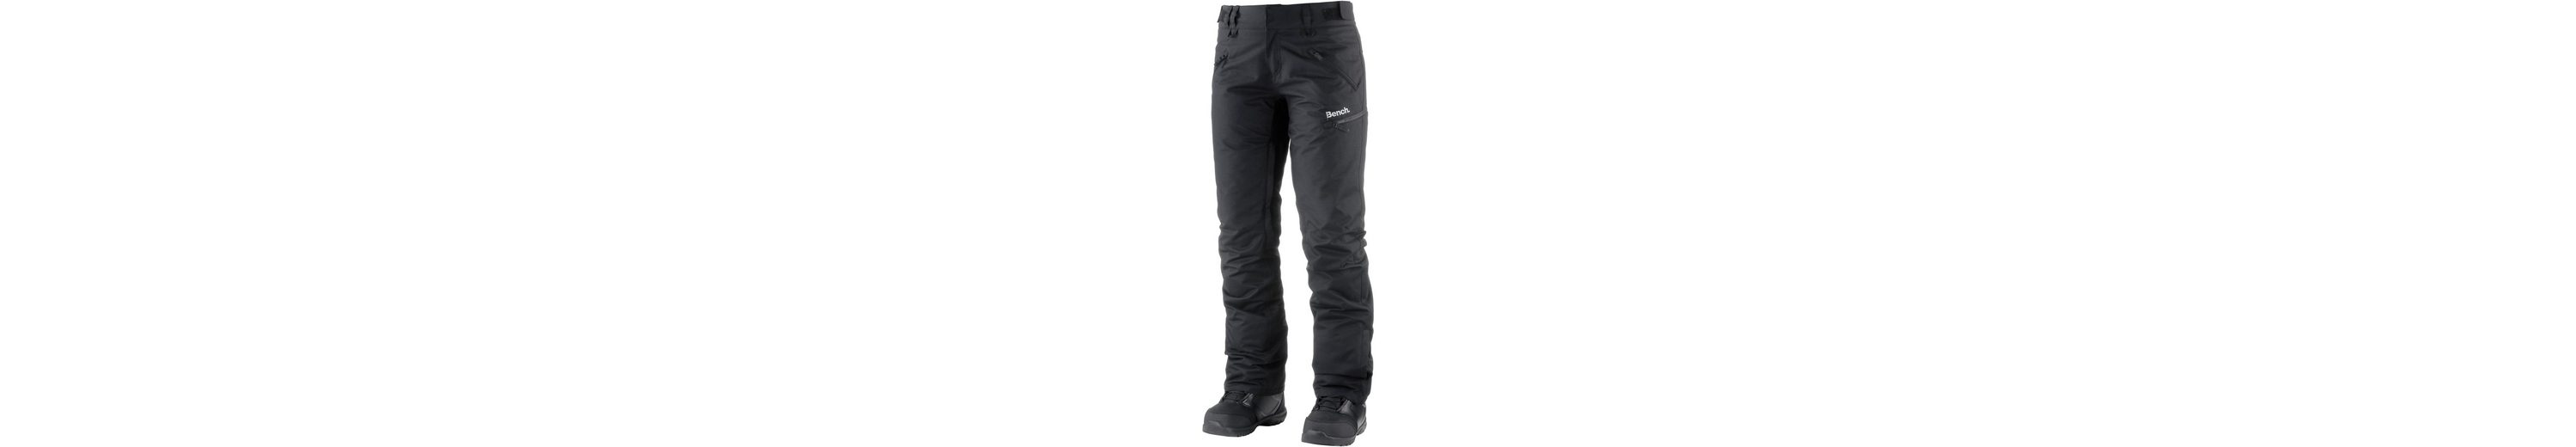 SOLID BOLD Bench Snowboardhose Snowboardhose BOLD PANT Bench IqTwXfxnH